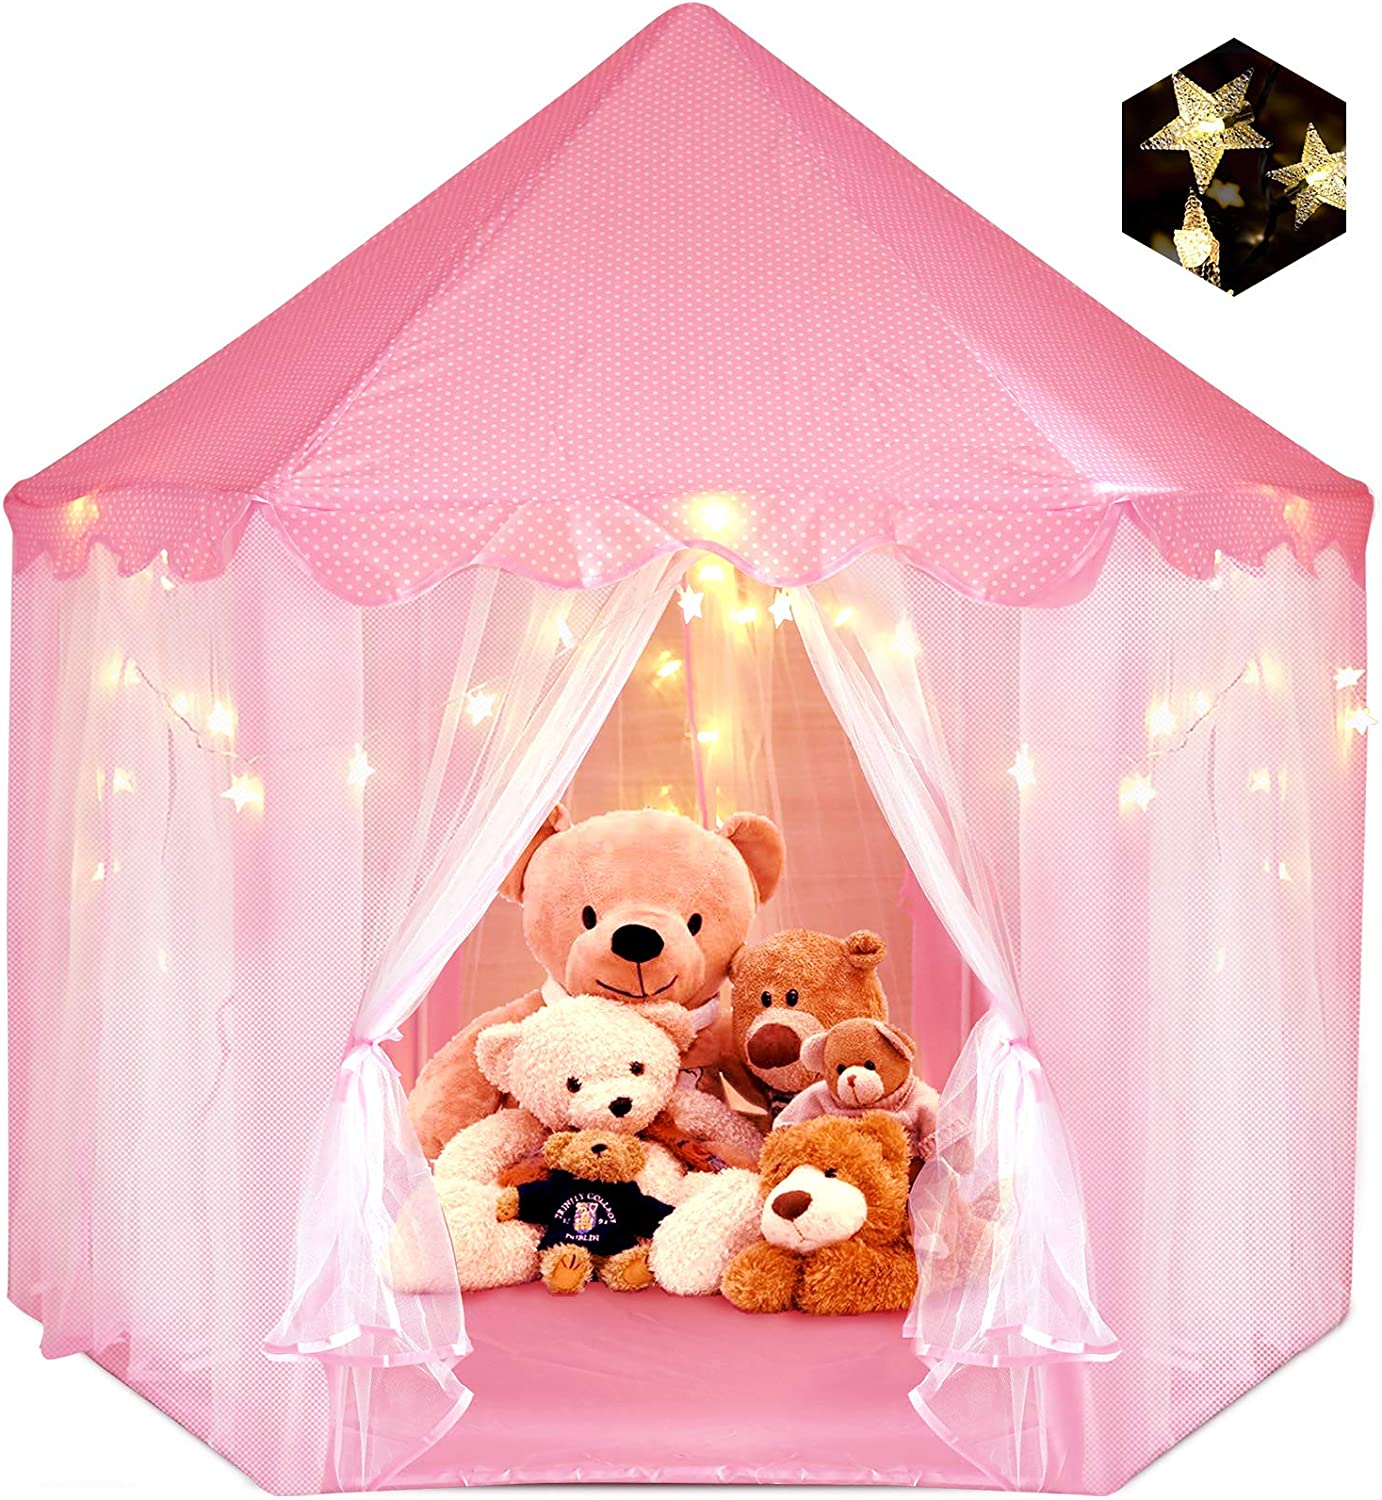 Portable Play Tent For Girls Pink Princess Castle Tent Indoor /& Outdoor Use